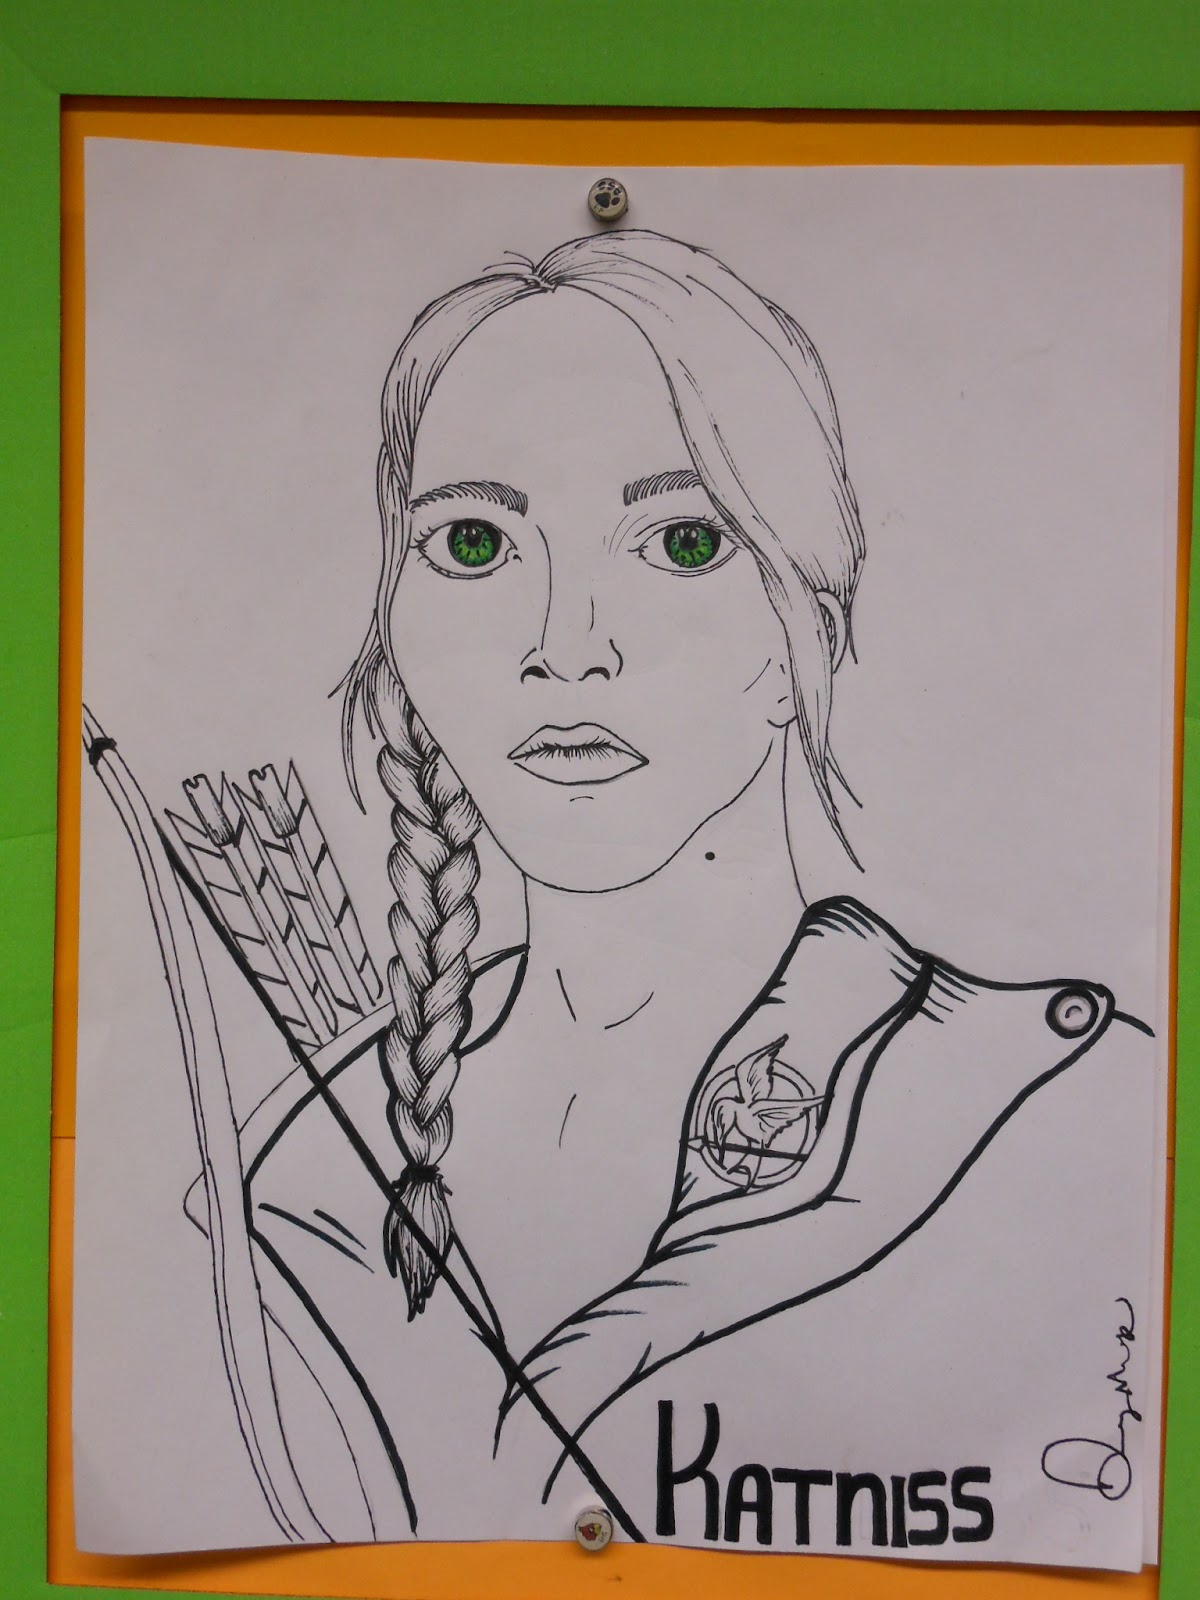 What pictures represent katniss everdeen yahoo answers - Katniss Everdeen By Danny Mask 2012